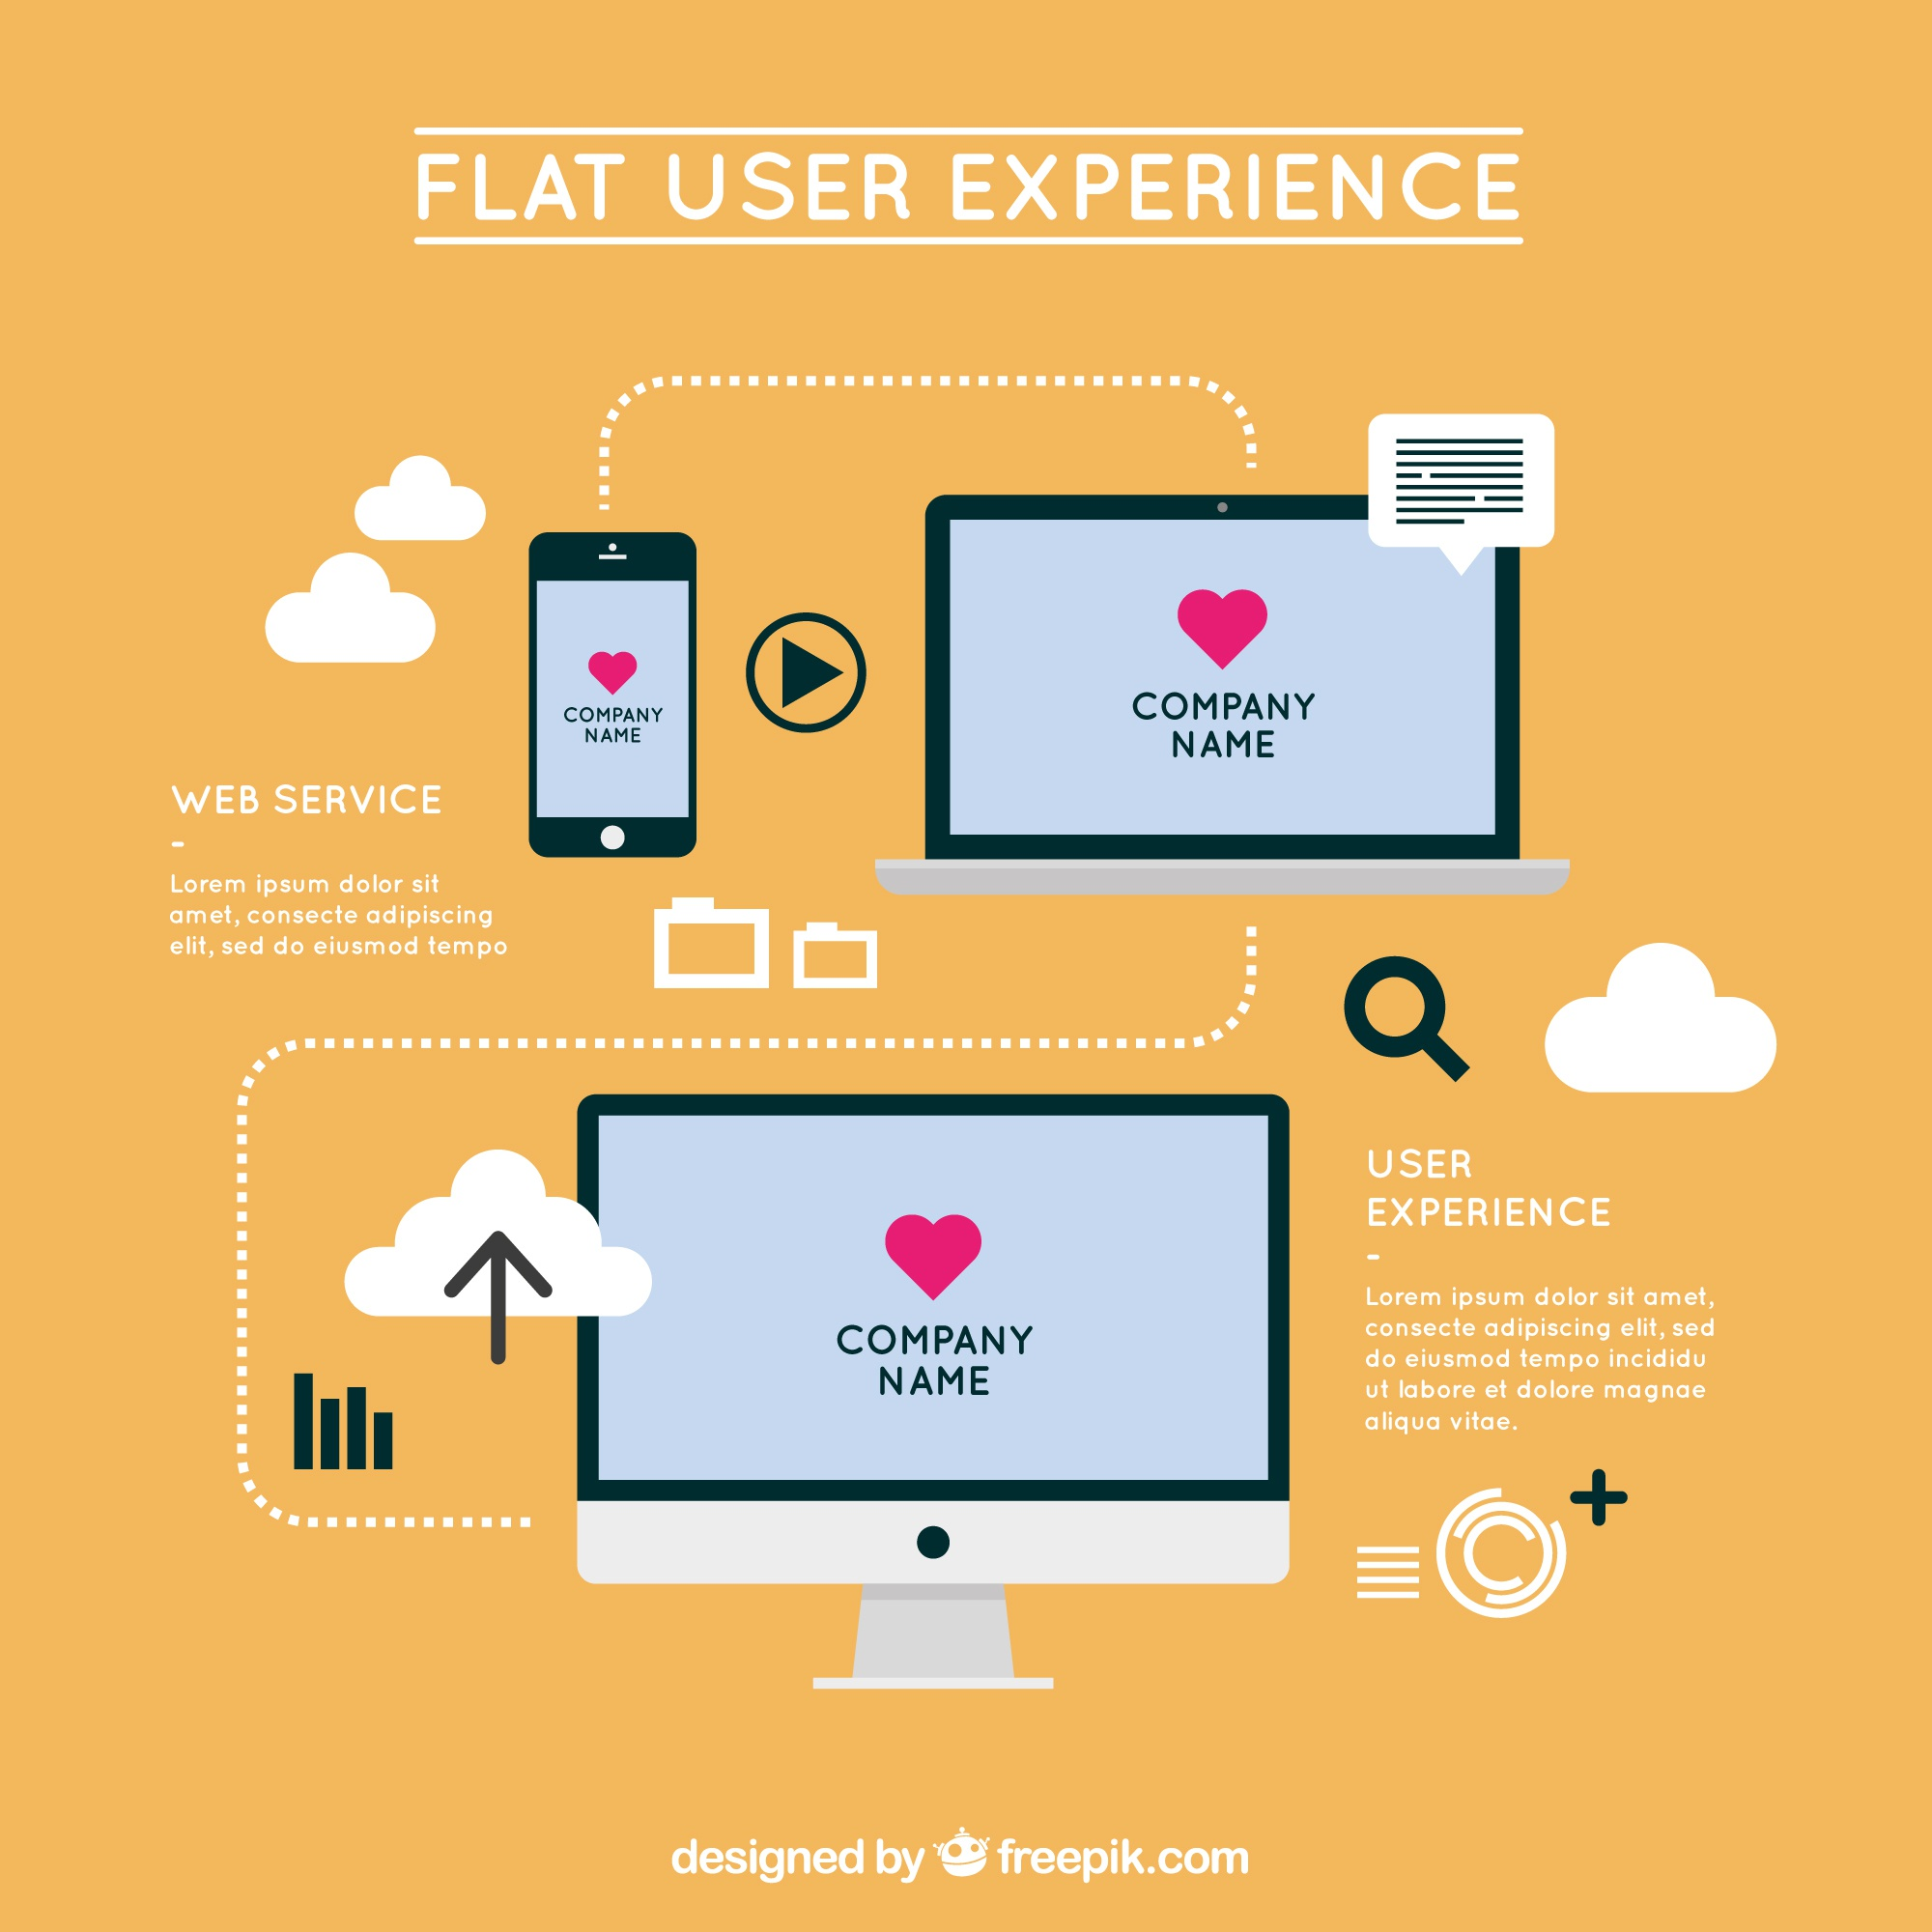 User experience with dispositive